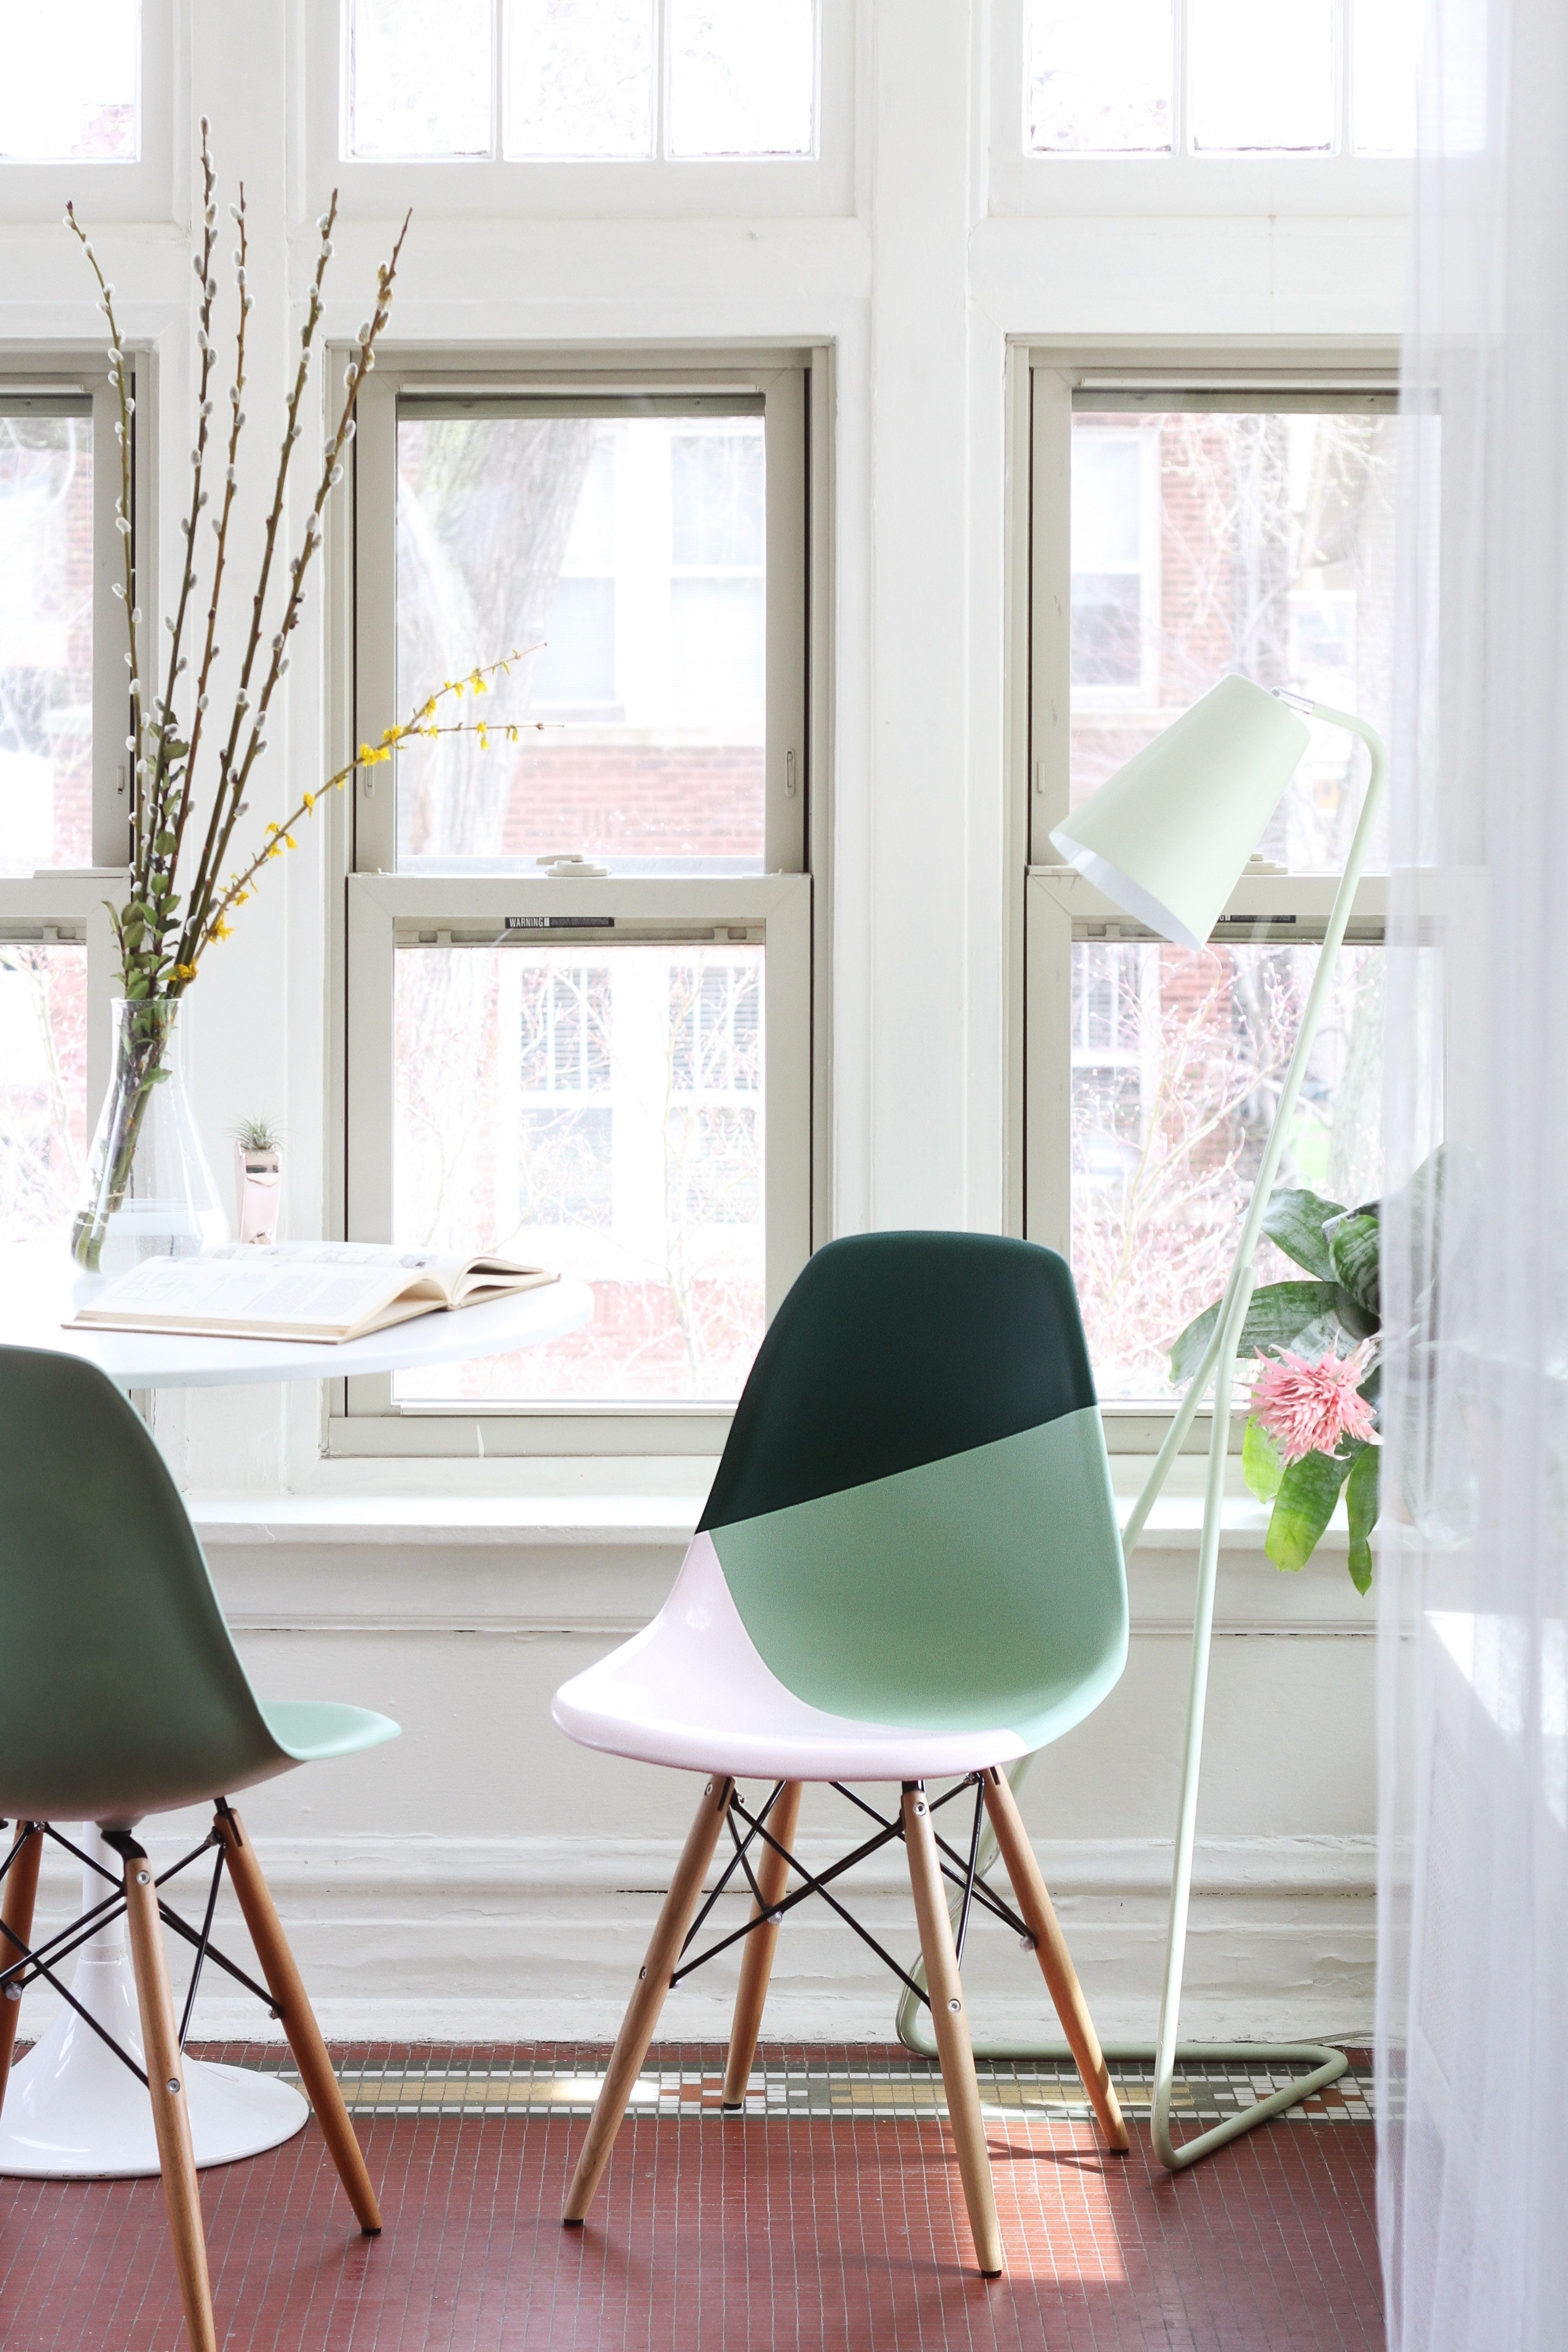 Learn How To Spray Paint Plastic The Right Way Apartment